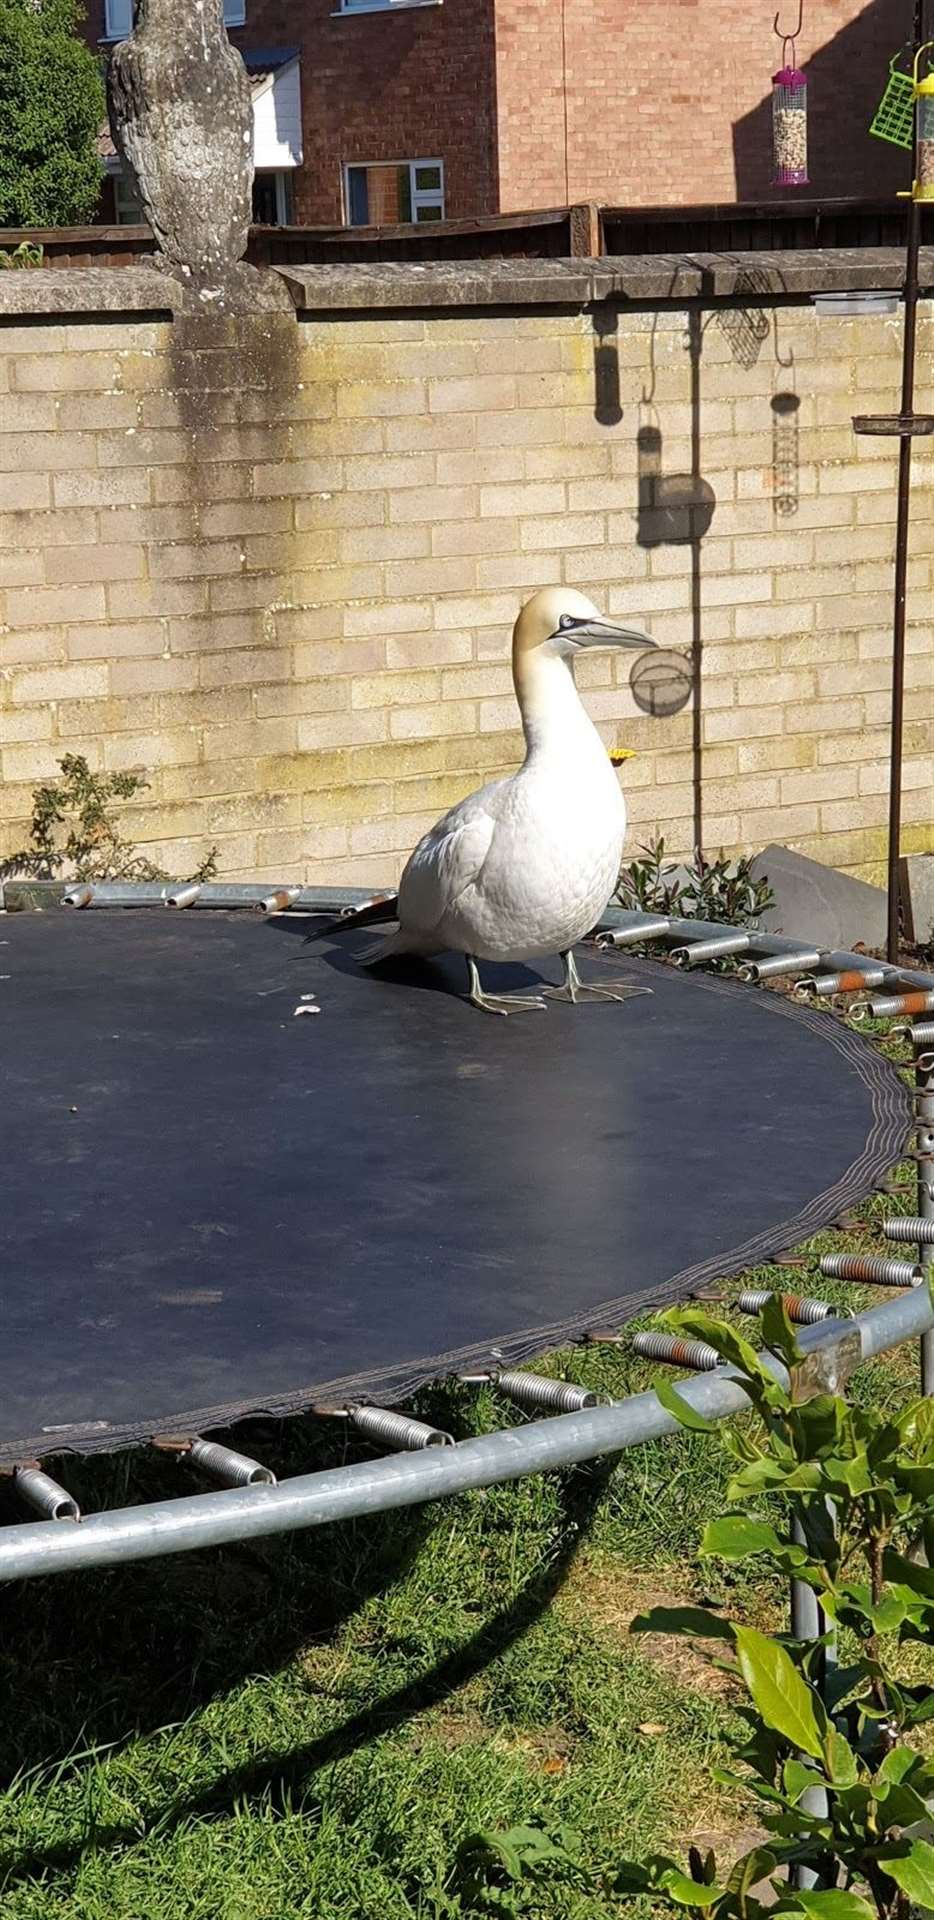 Dawn Austin was surprised to find this gannet on her trampoline. Picture: SUBMITTED